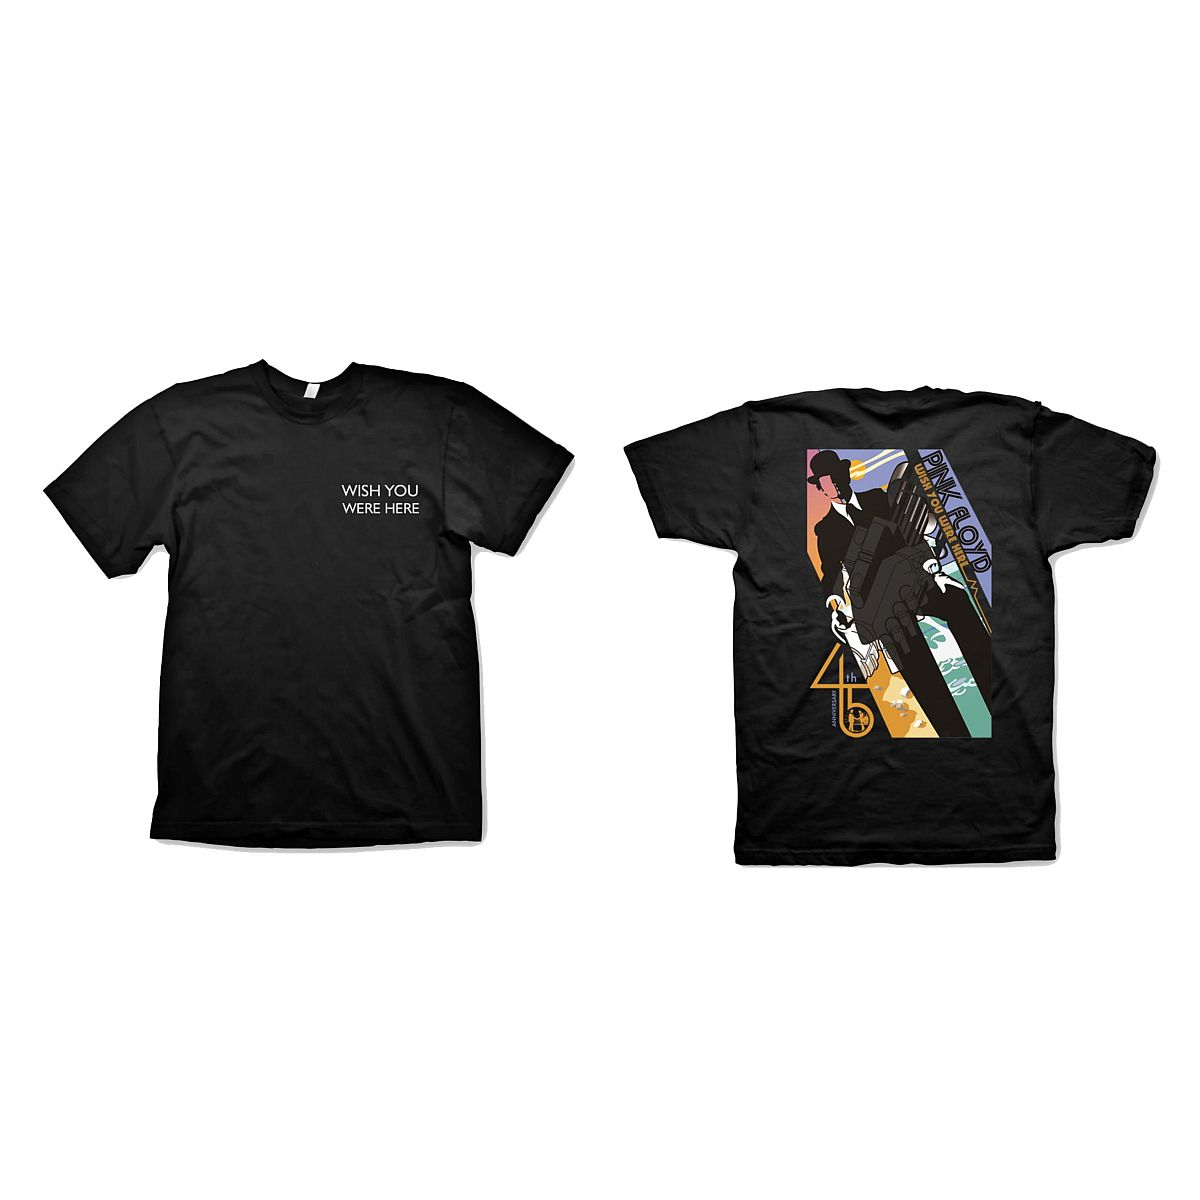 Wish You Were Here 45th Anniversary Title Print T-Shirt